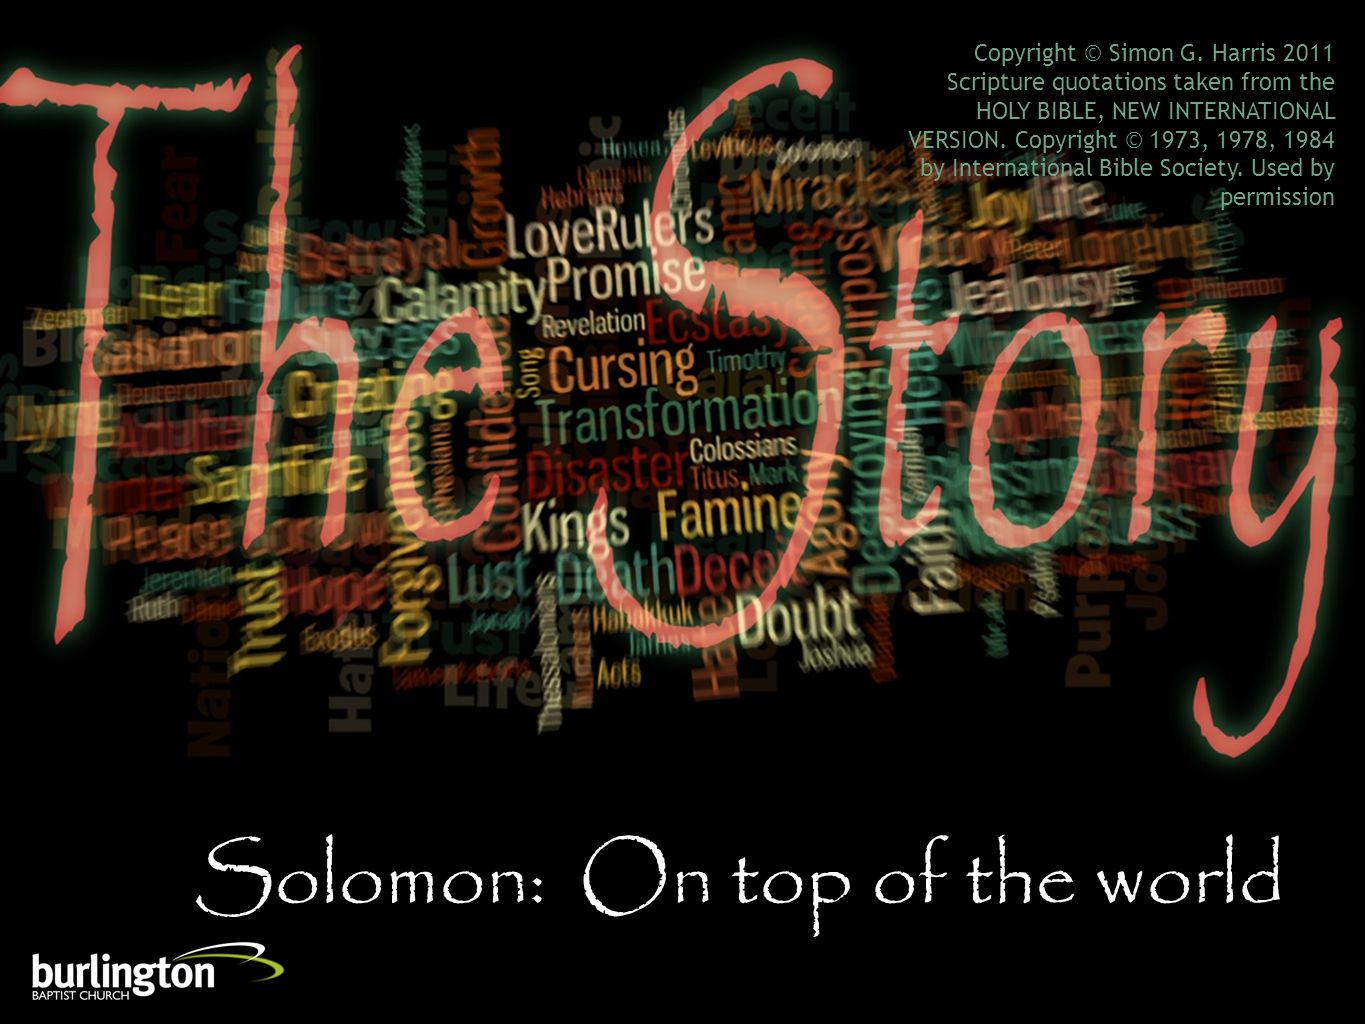 Solomon: On top of the world Copyright © Simon G. Harris 2011 Scripture quotations taken from the HOLY BIBLE, NEW INTERNATIONAL VERSION. Copyright © 1